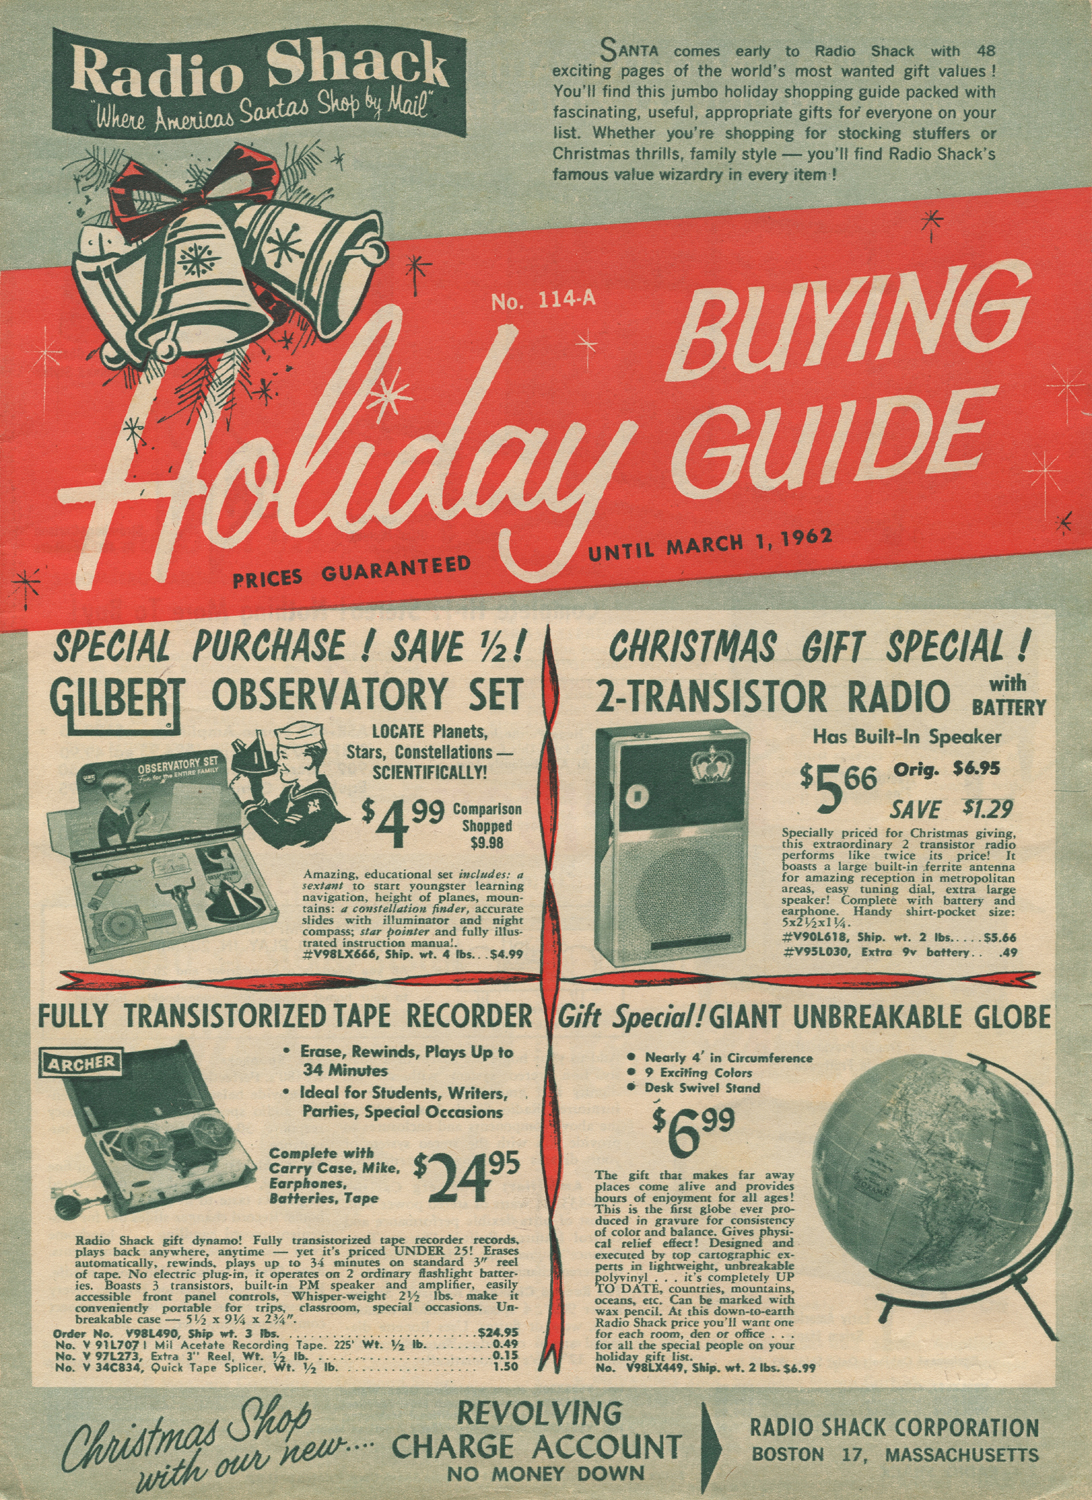 Neato Coolville: HIGHLIGHTS FROM A 1961 RADIO SHACK CHRISTMAS CATALOG